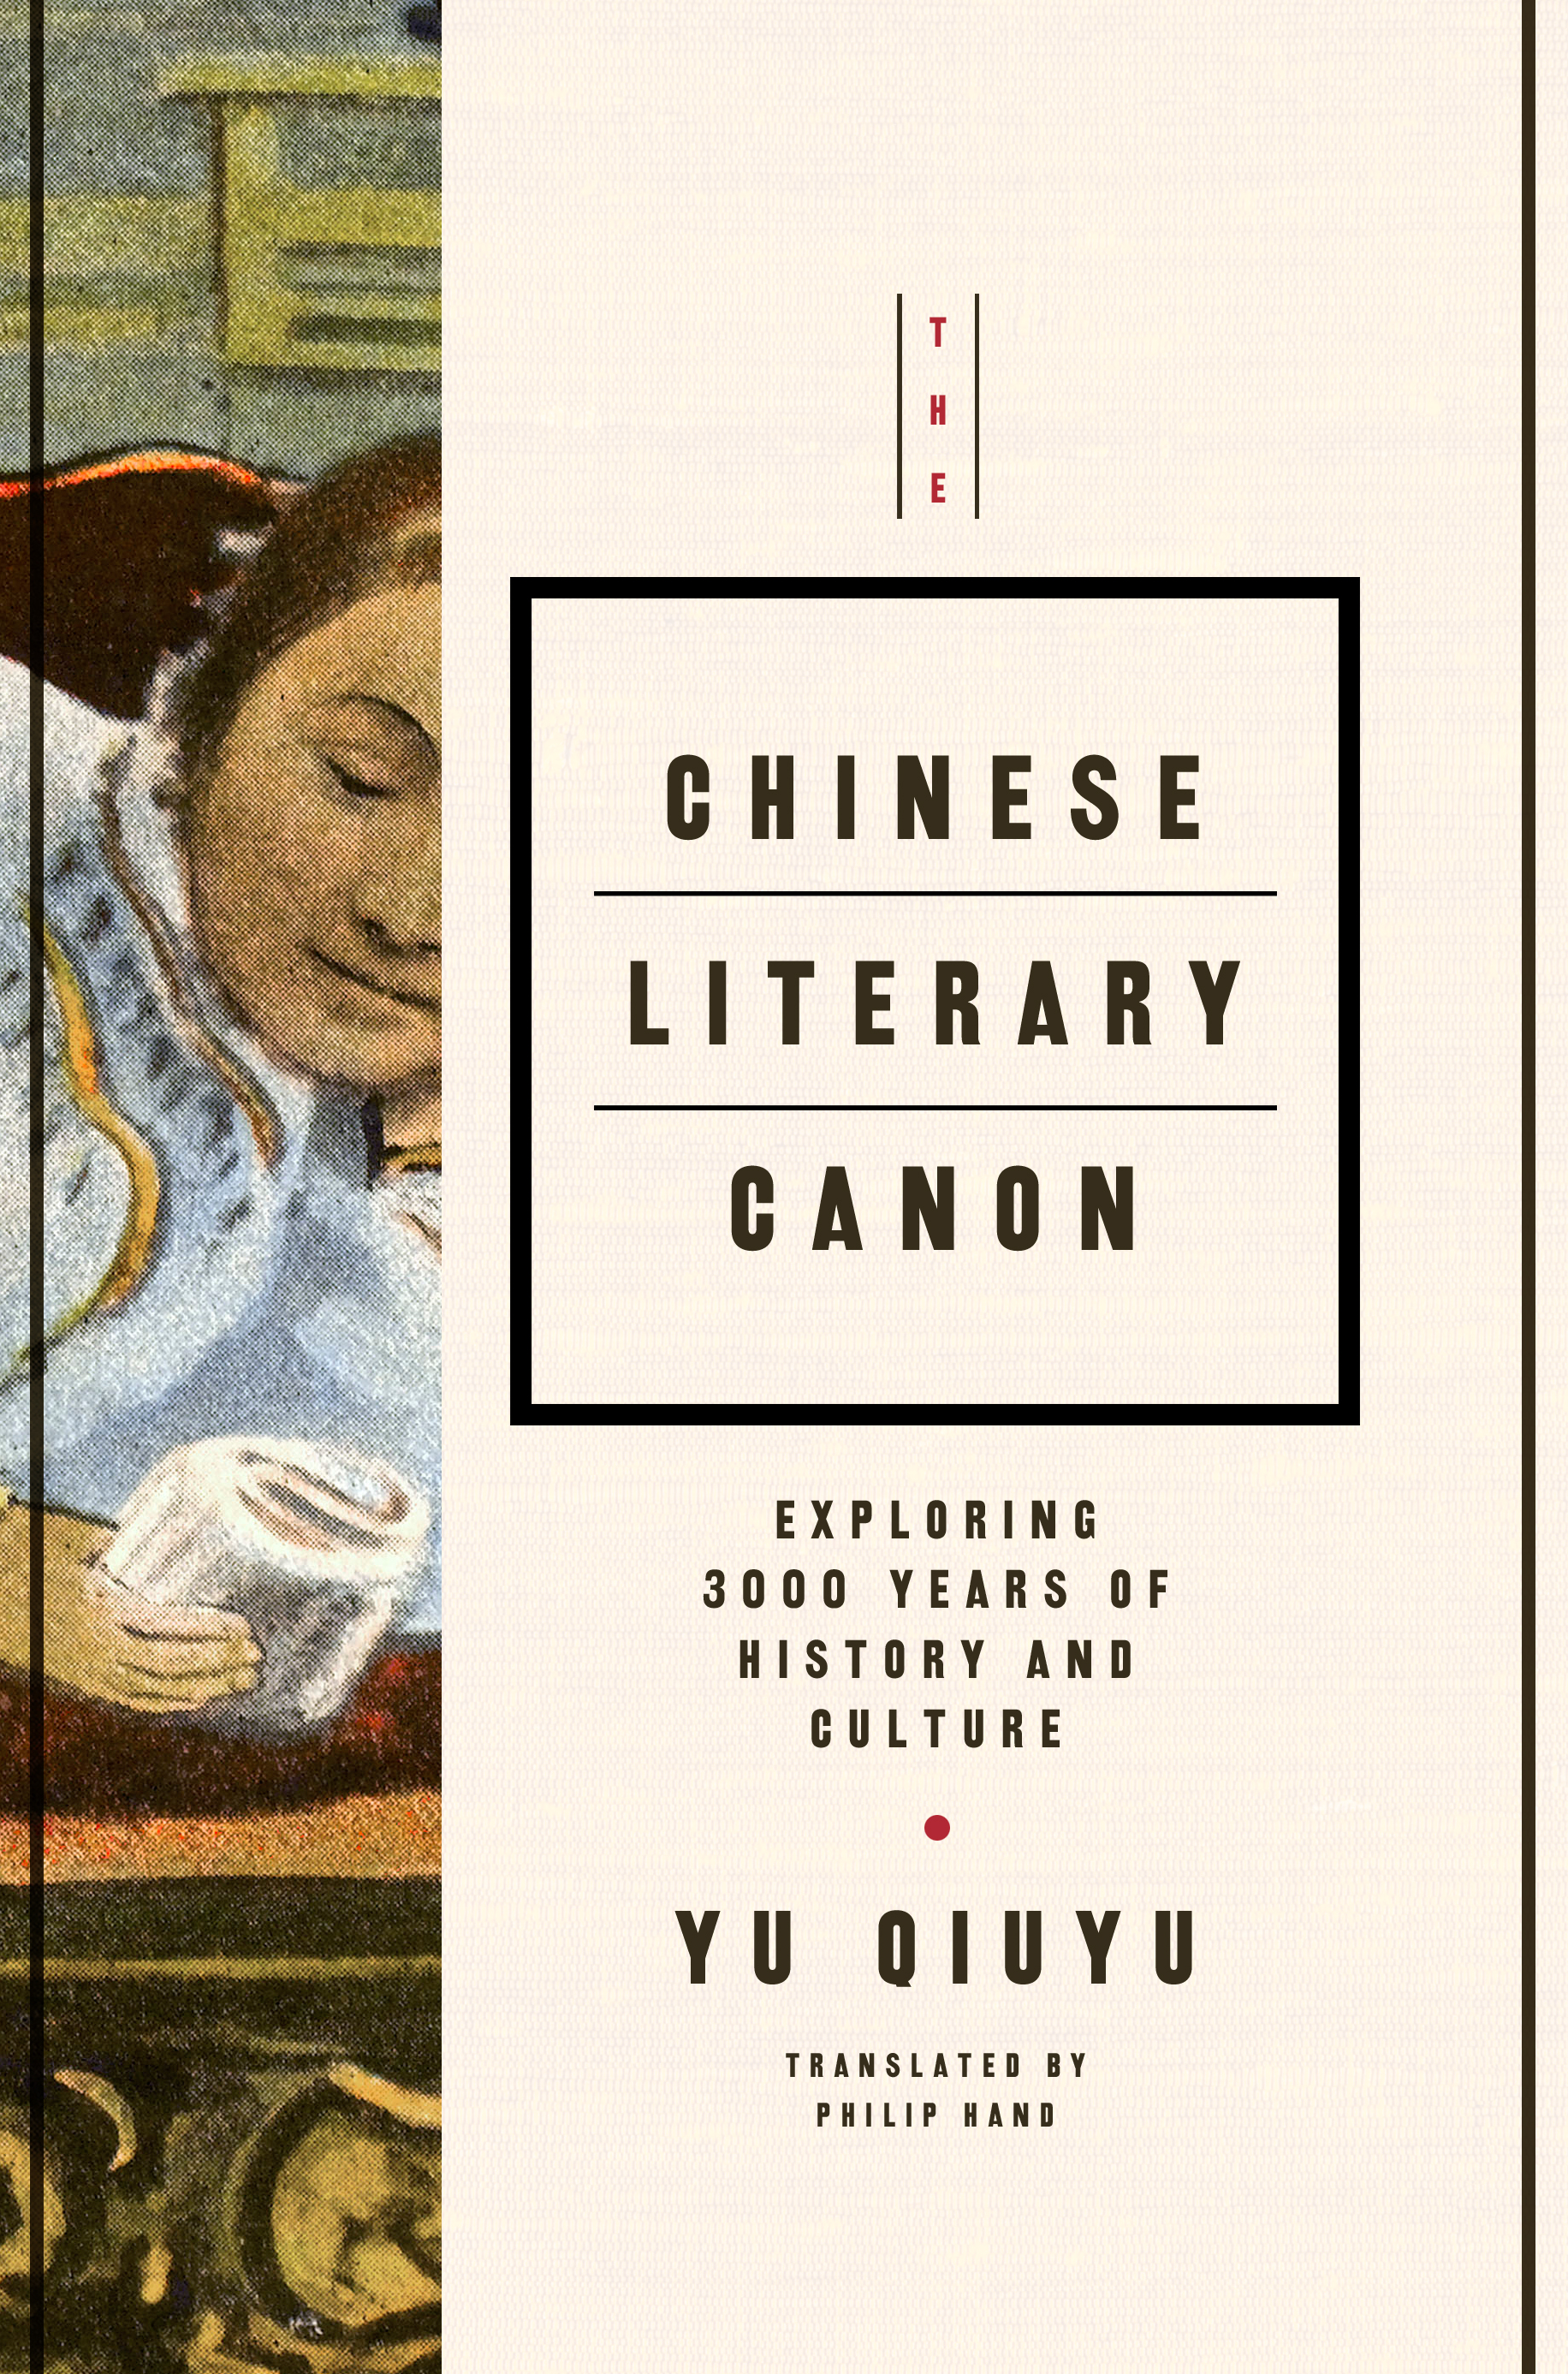 The Chinese Literary Canon